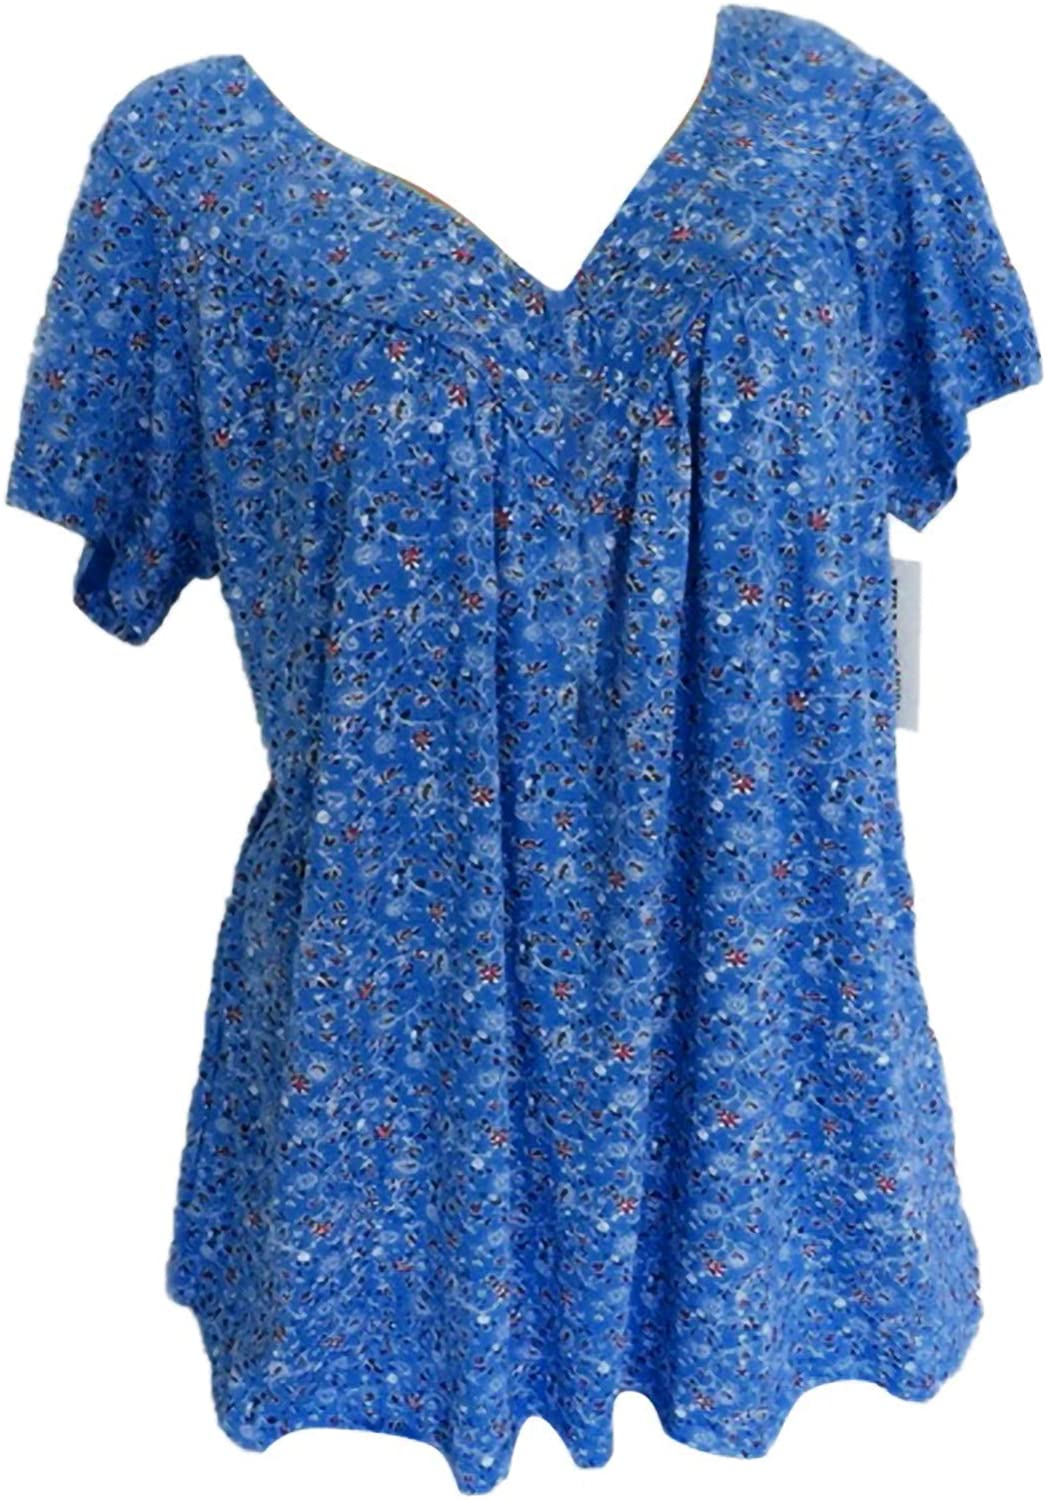 Raleigh Mall Womens Plus Size Swing Tops V-Neck Print Sleeves Bl Short Max 59% OFF Floral